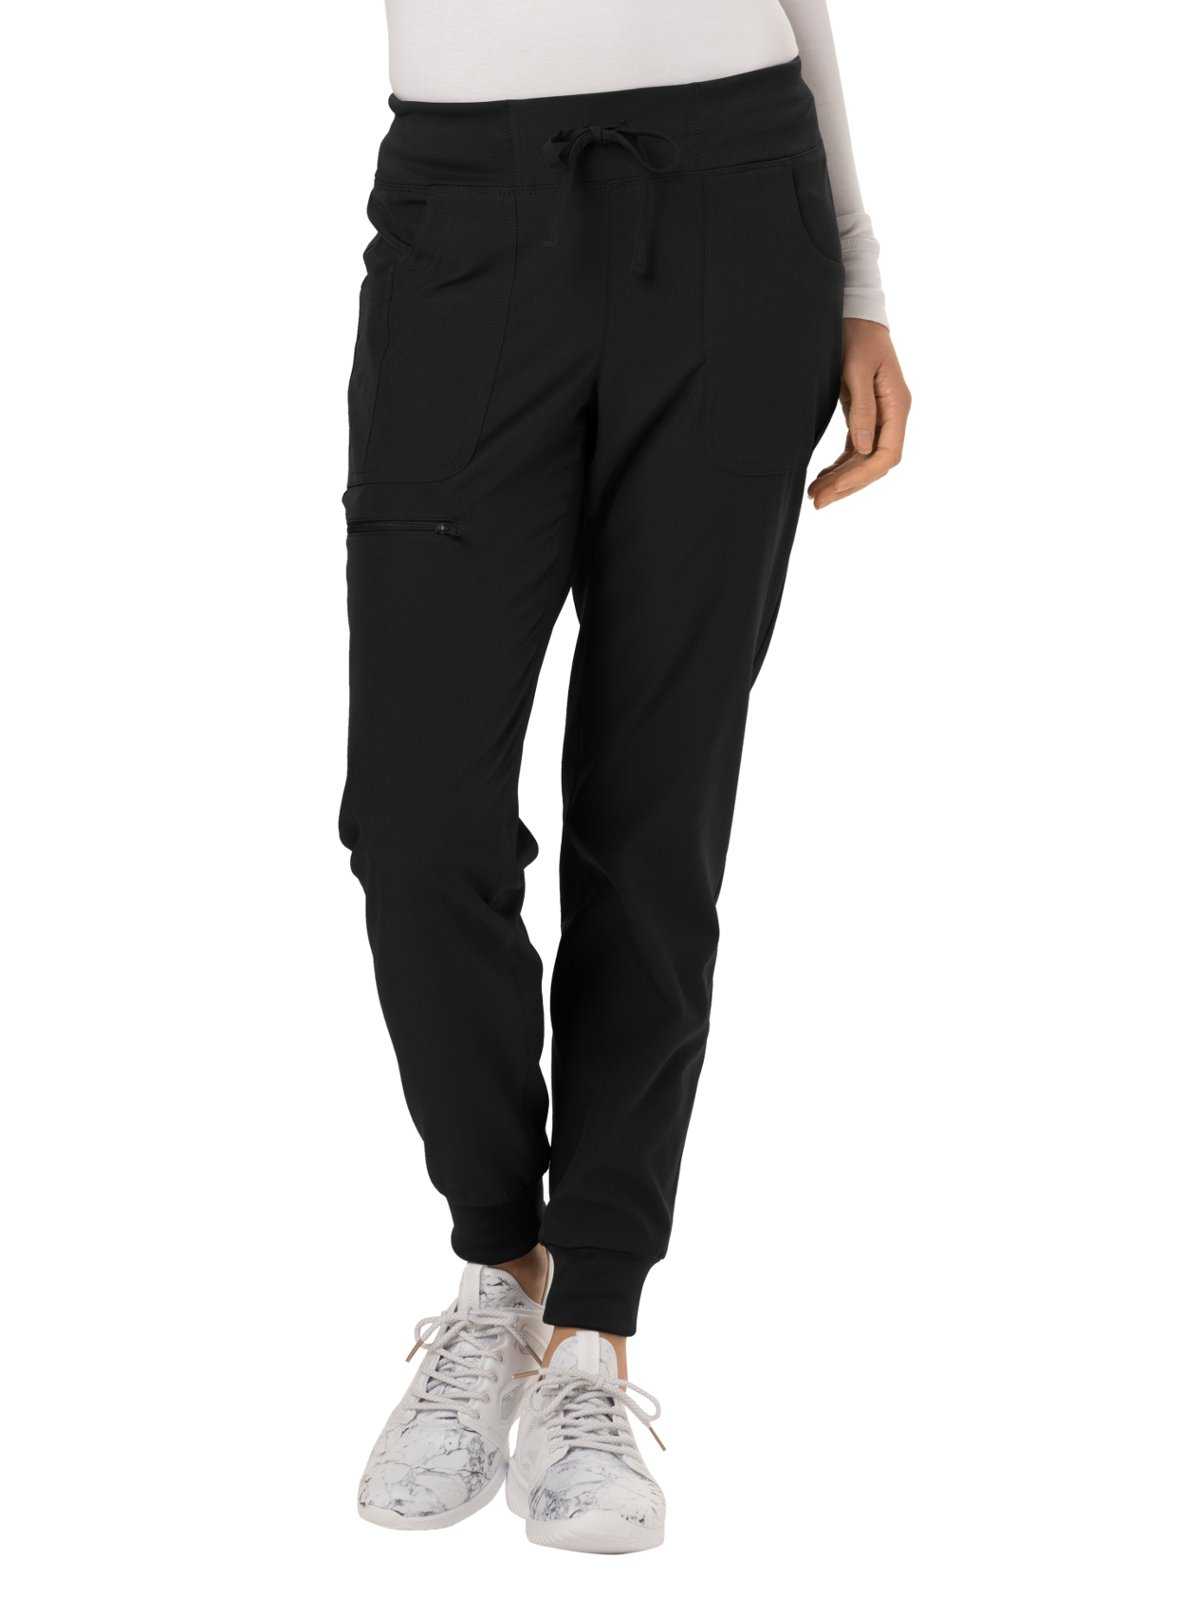 HeartSoul Break On Through by Women's The Jogger Low Rise Tapered Leg Scrub Pant X-Small Petite Black